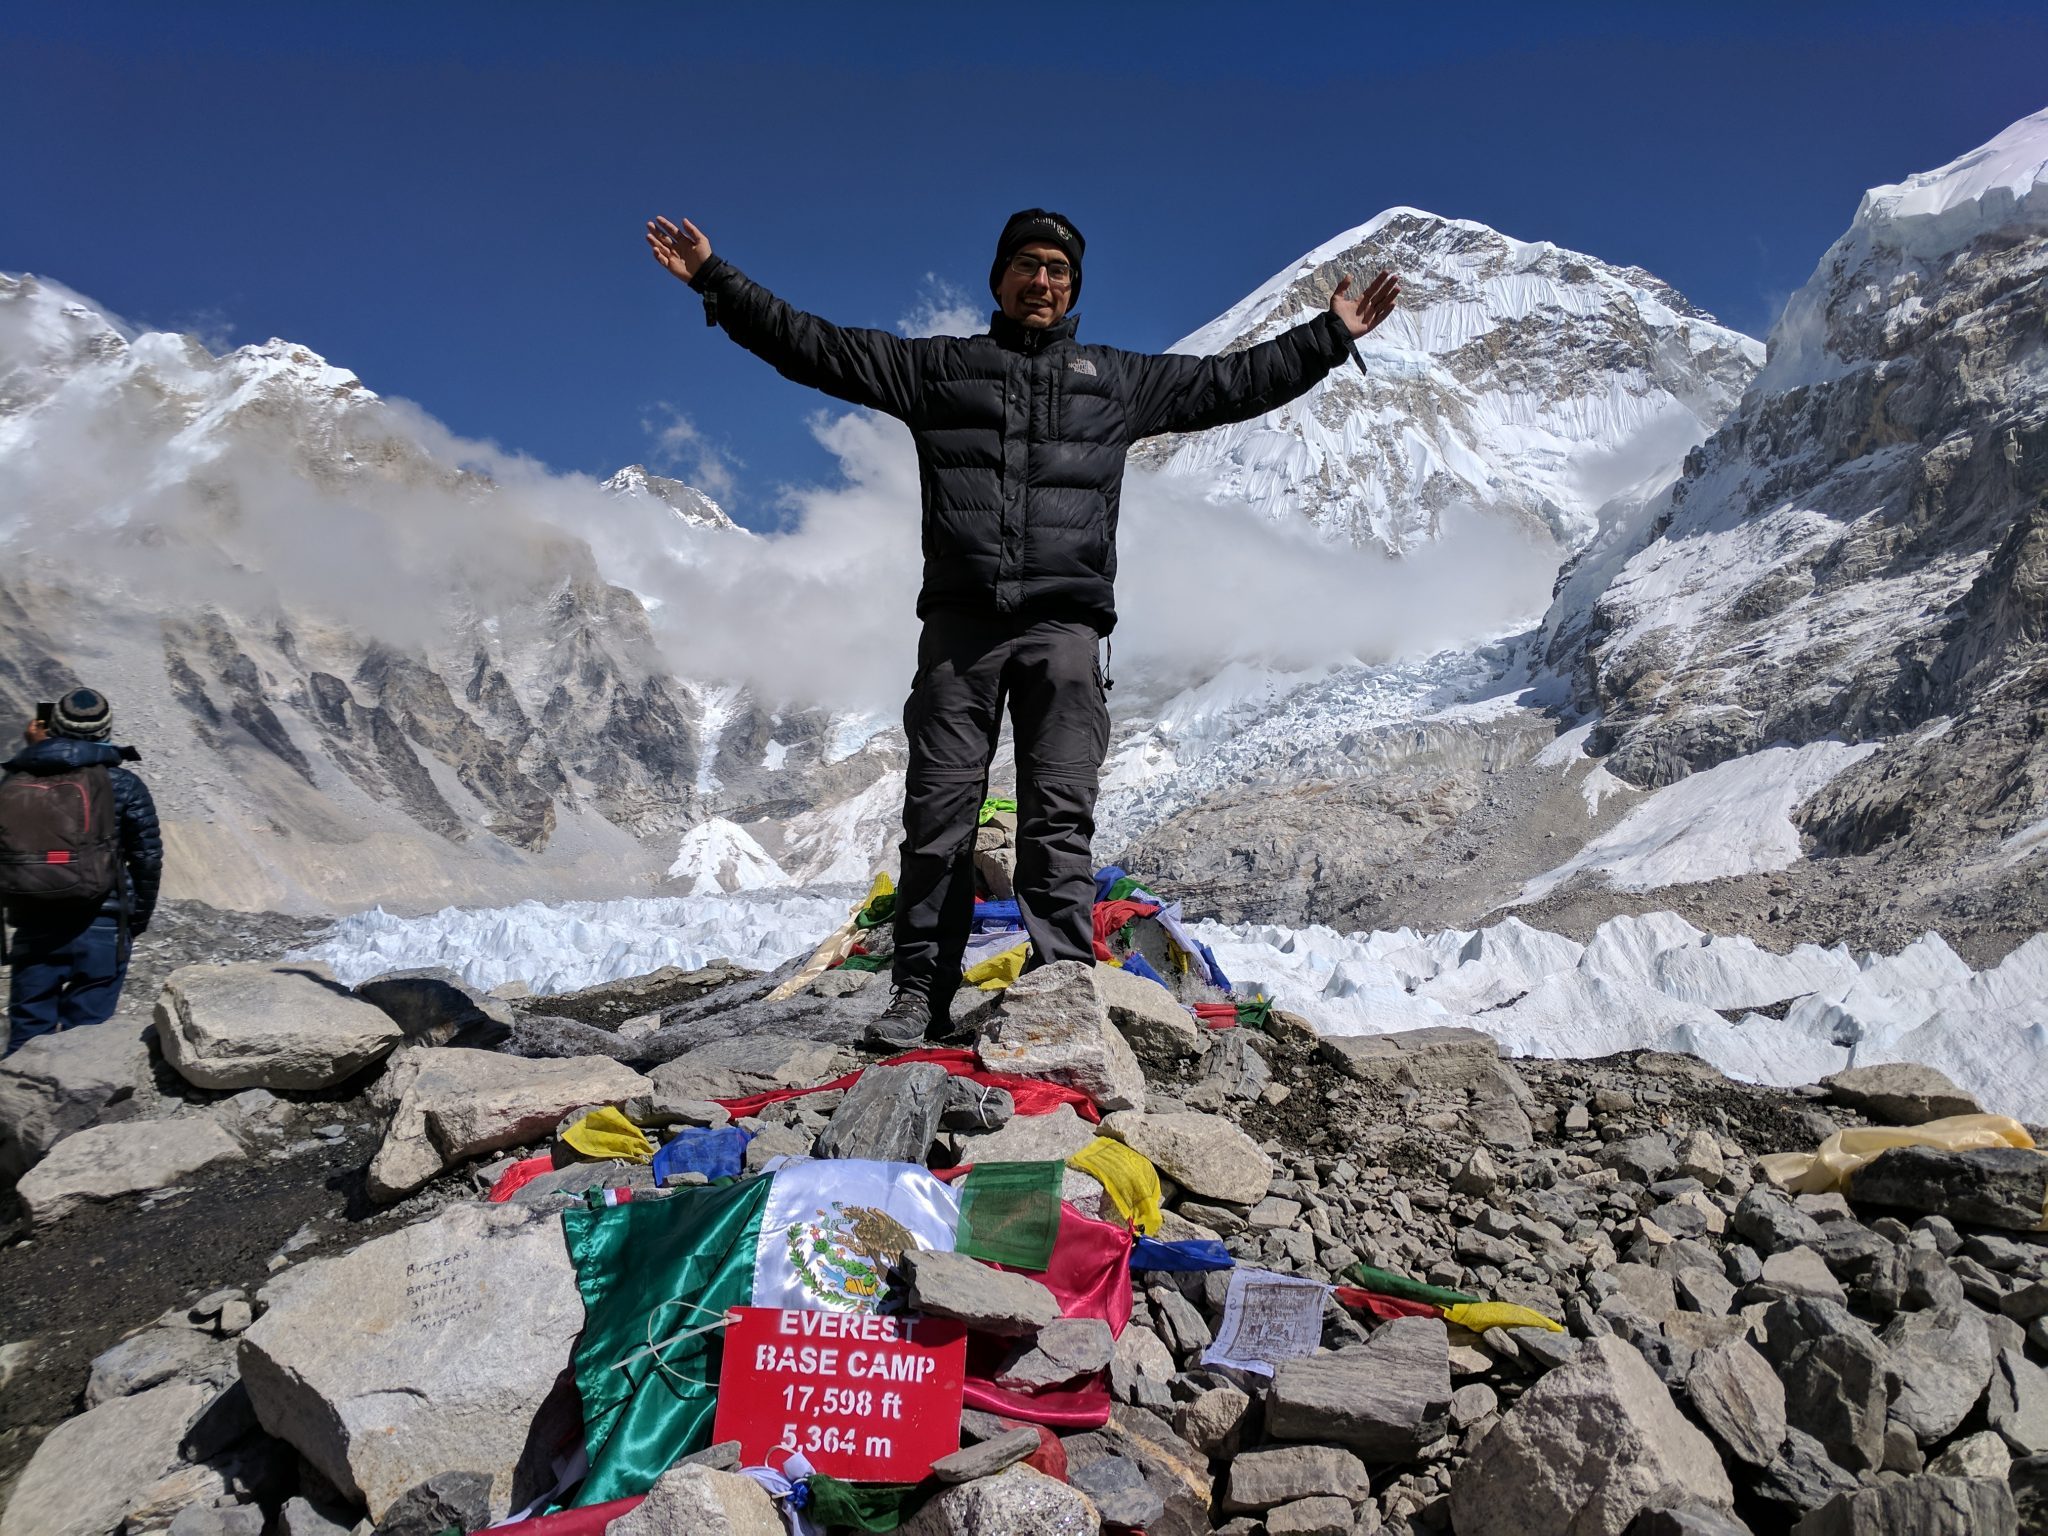 Me at the Everest Base Camp